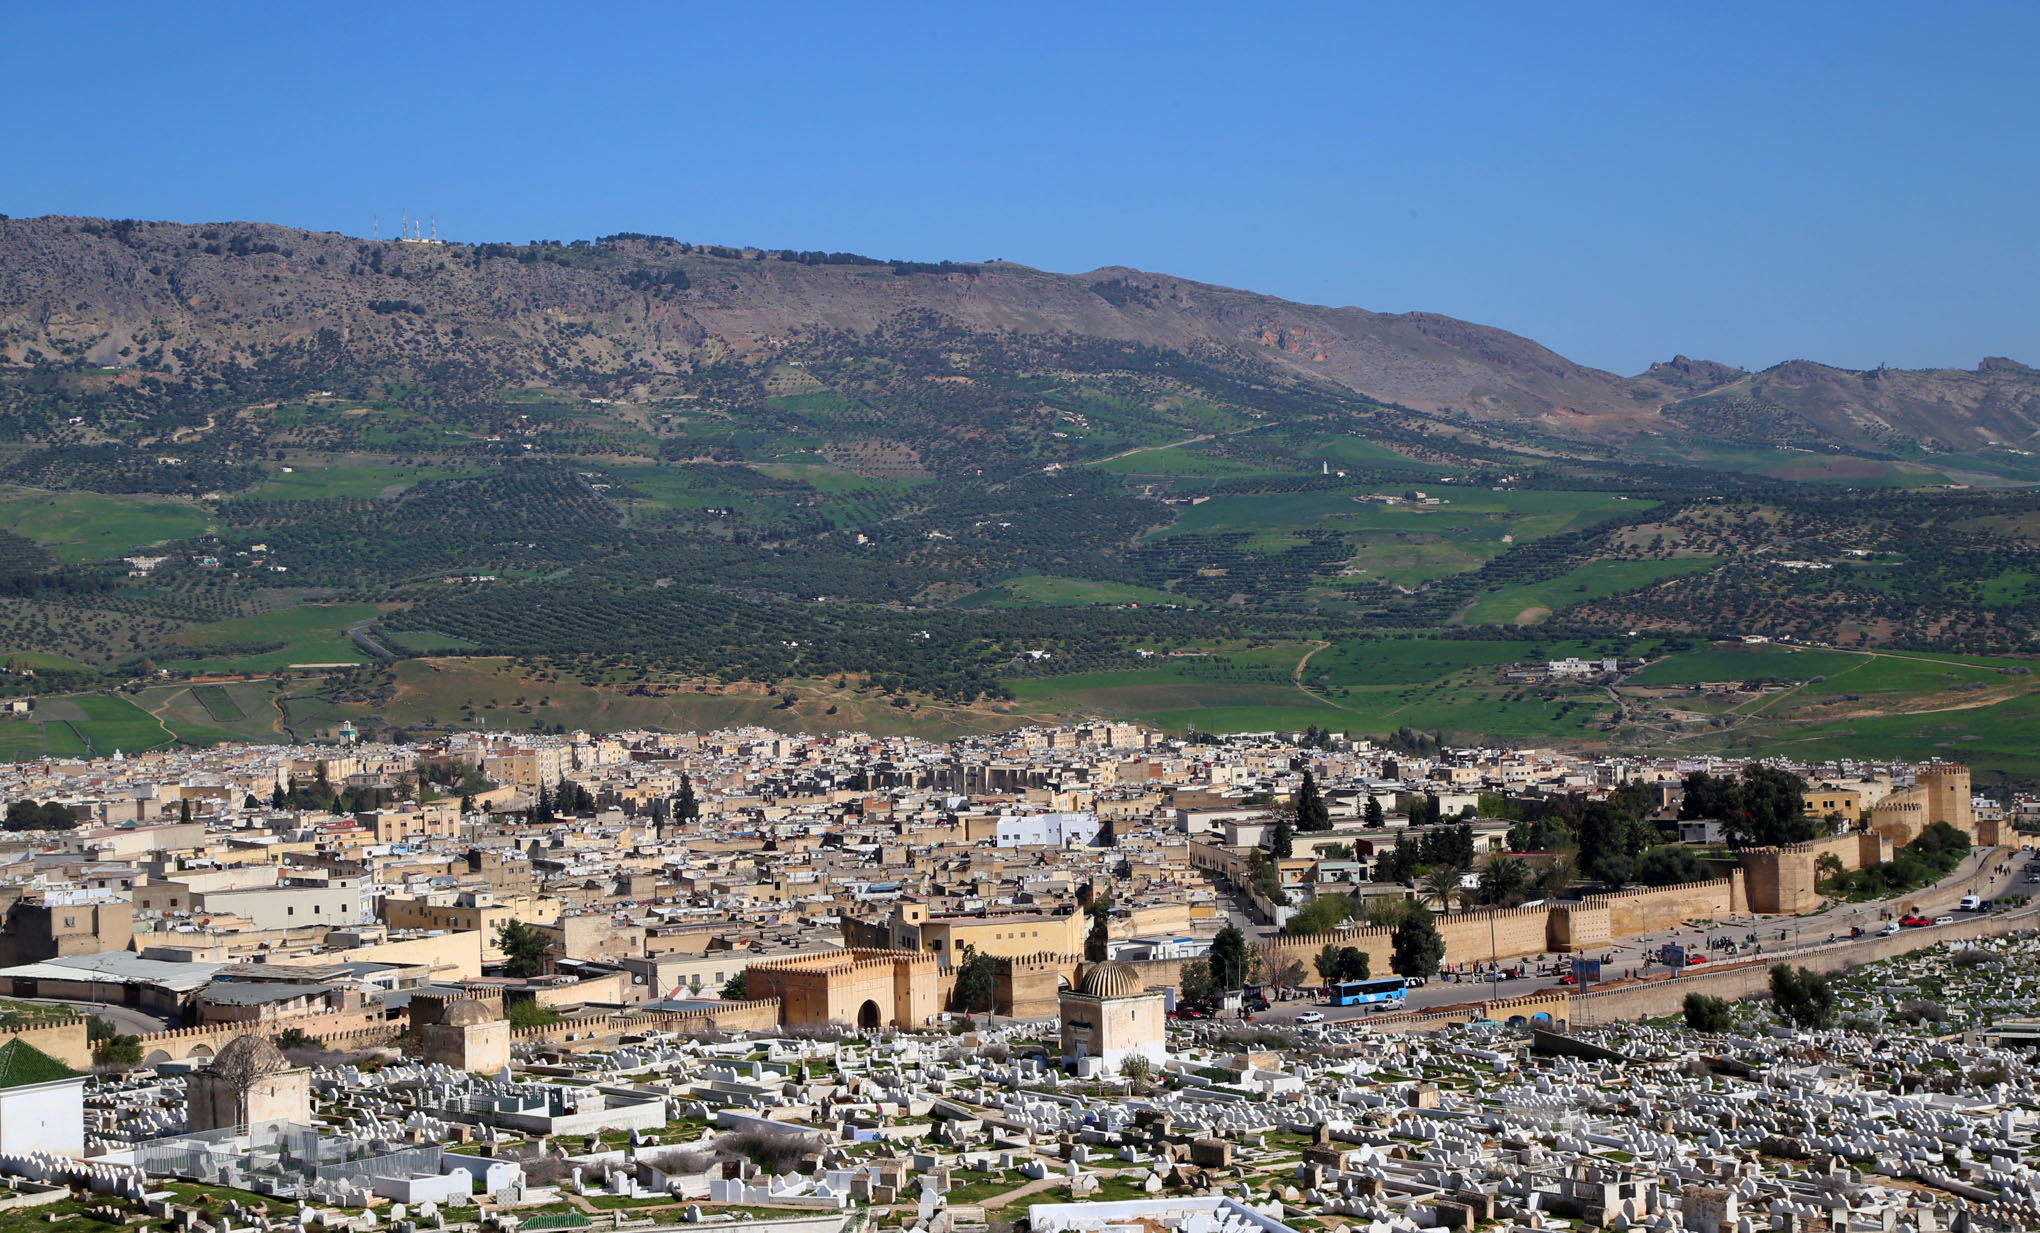 Fez Medina in Perspective - 12